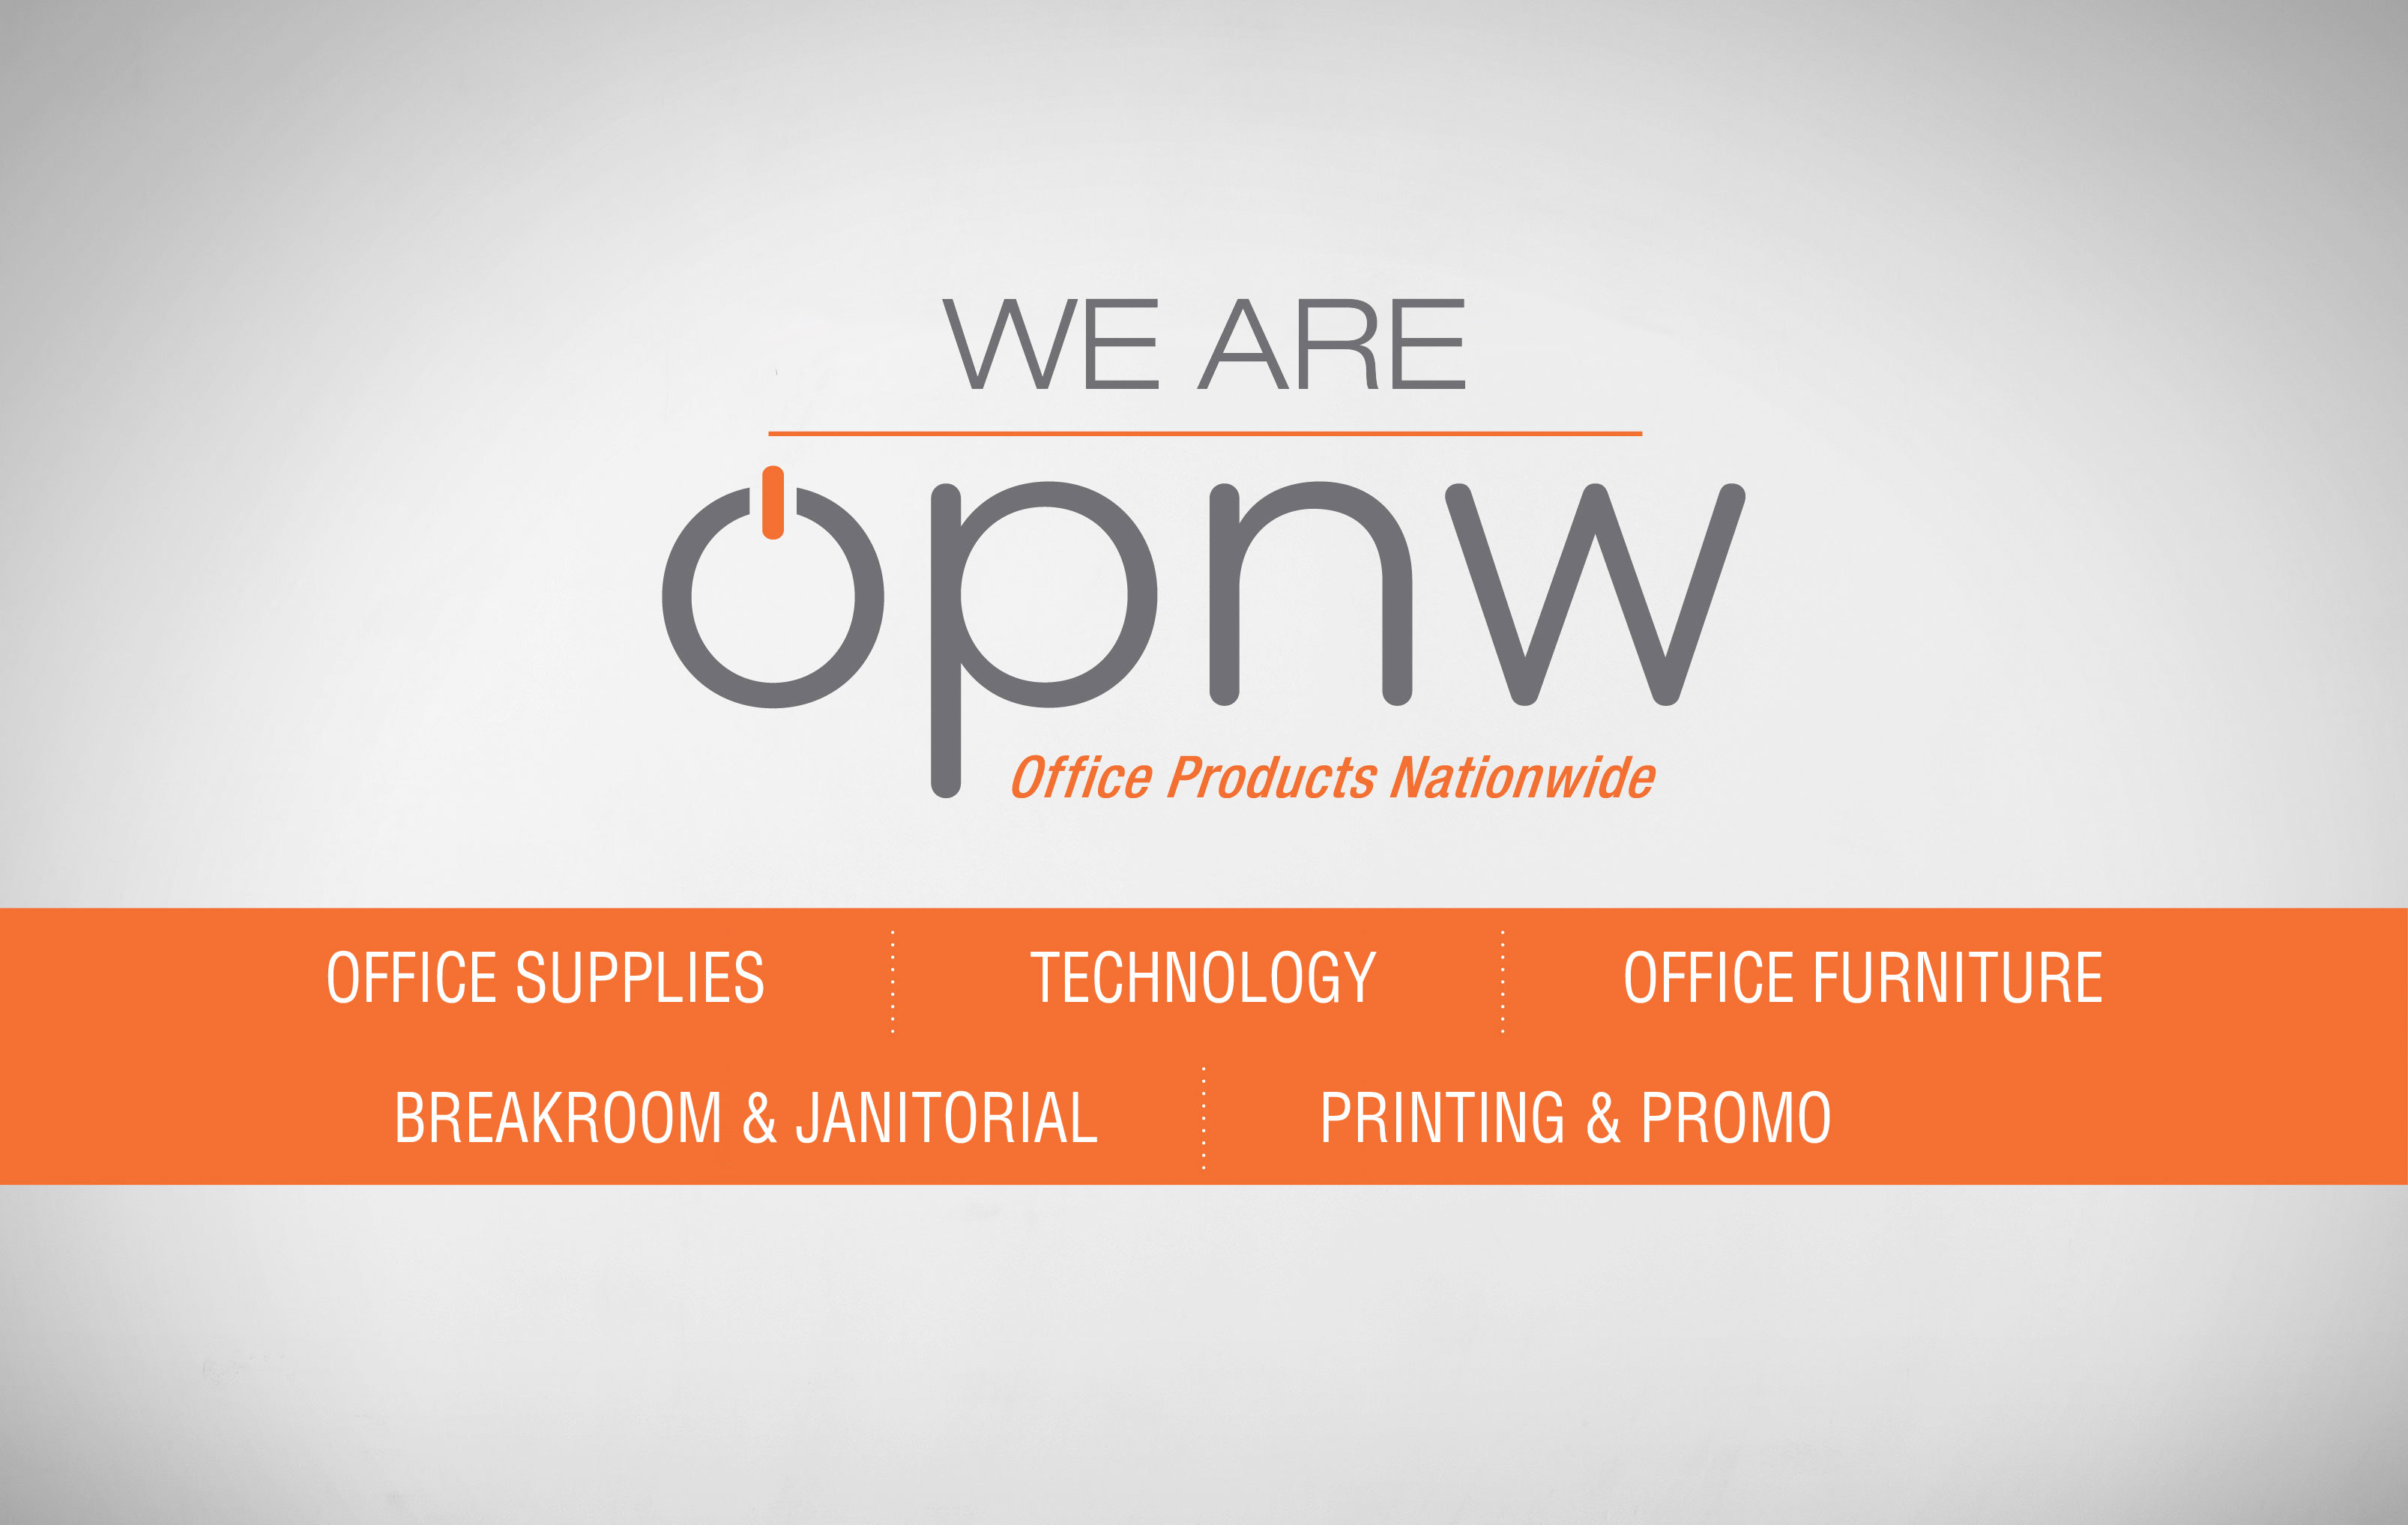 Office Products Nationwide